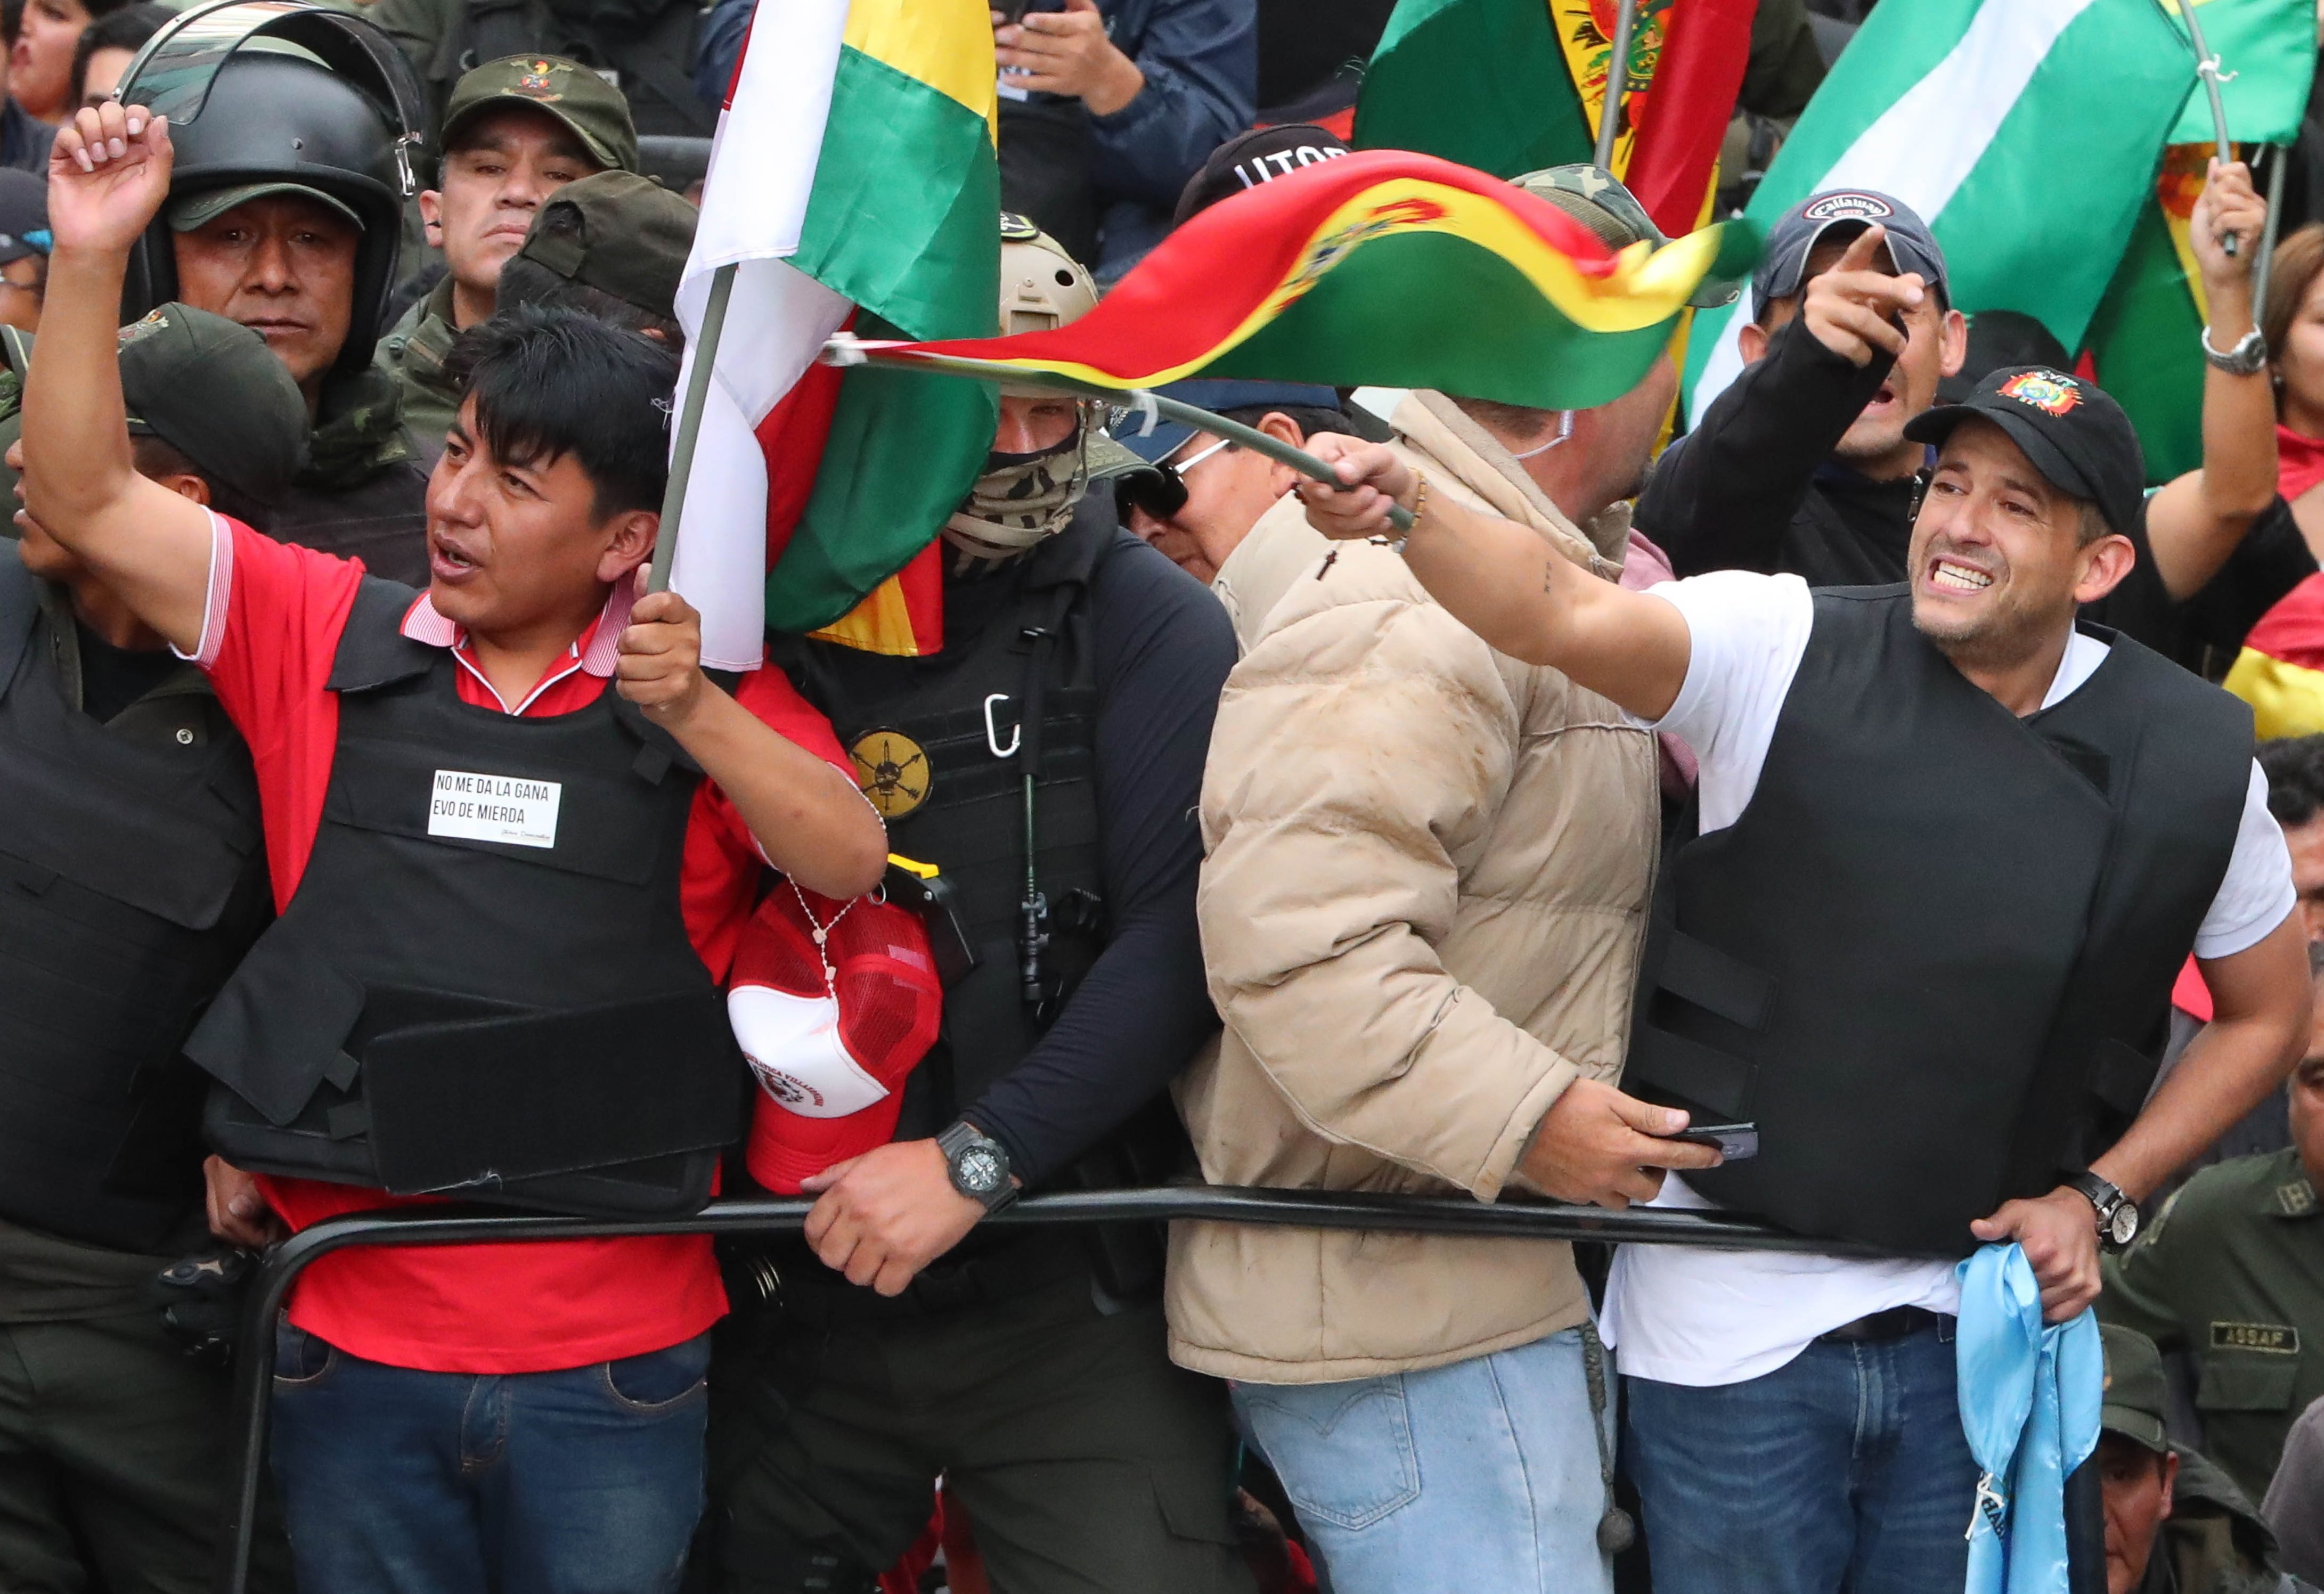 Civic leaders Luis Fernando Camacho (R) and Marco Pumari (L) celebrate with Bolivians the resignation of President Evo Morales